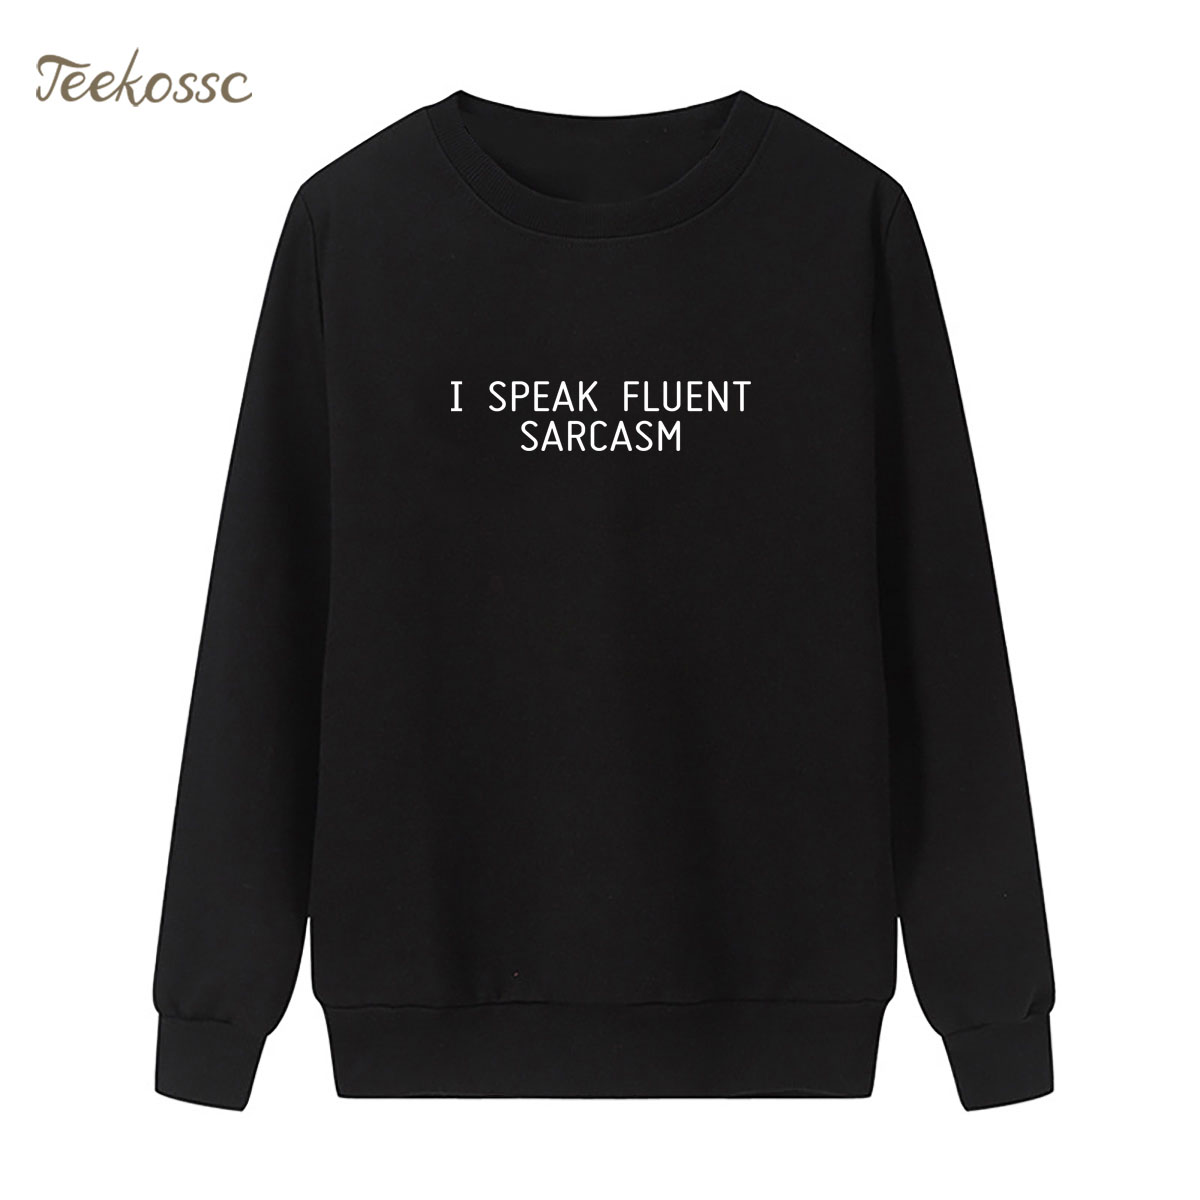 I SPEAK FLUENT SARCASM Sweatshirt Print Hoodie 2018 New Brand Winter Autumn Women Lasdies Pullover Casual Fleece Streetwear XXL